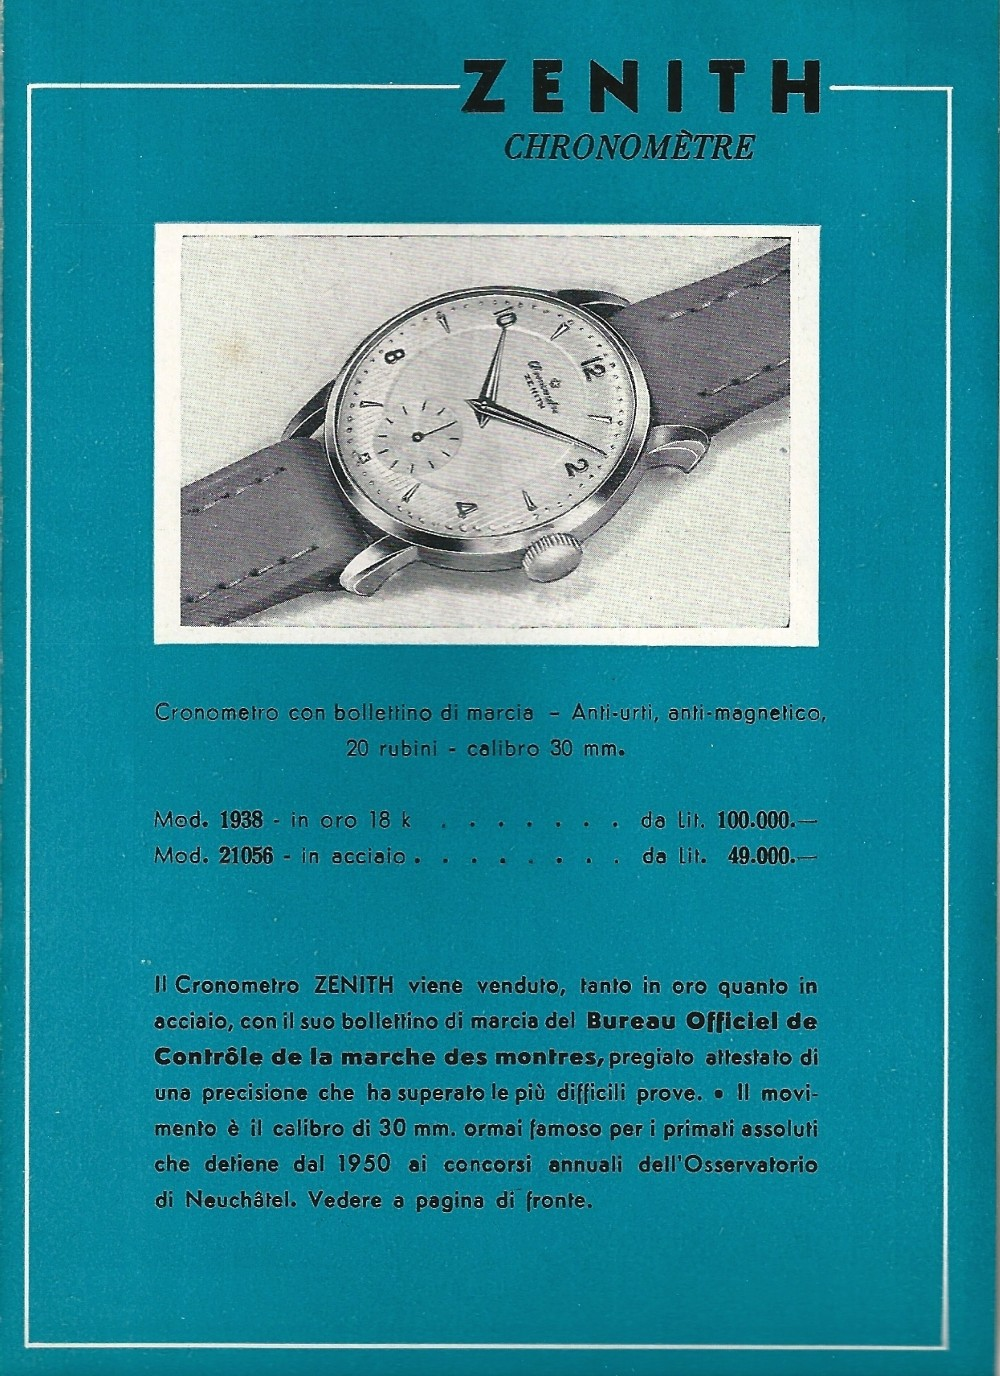 zenith calibre 135 chronometer - 1